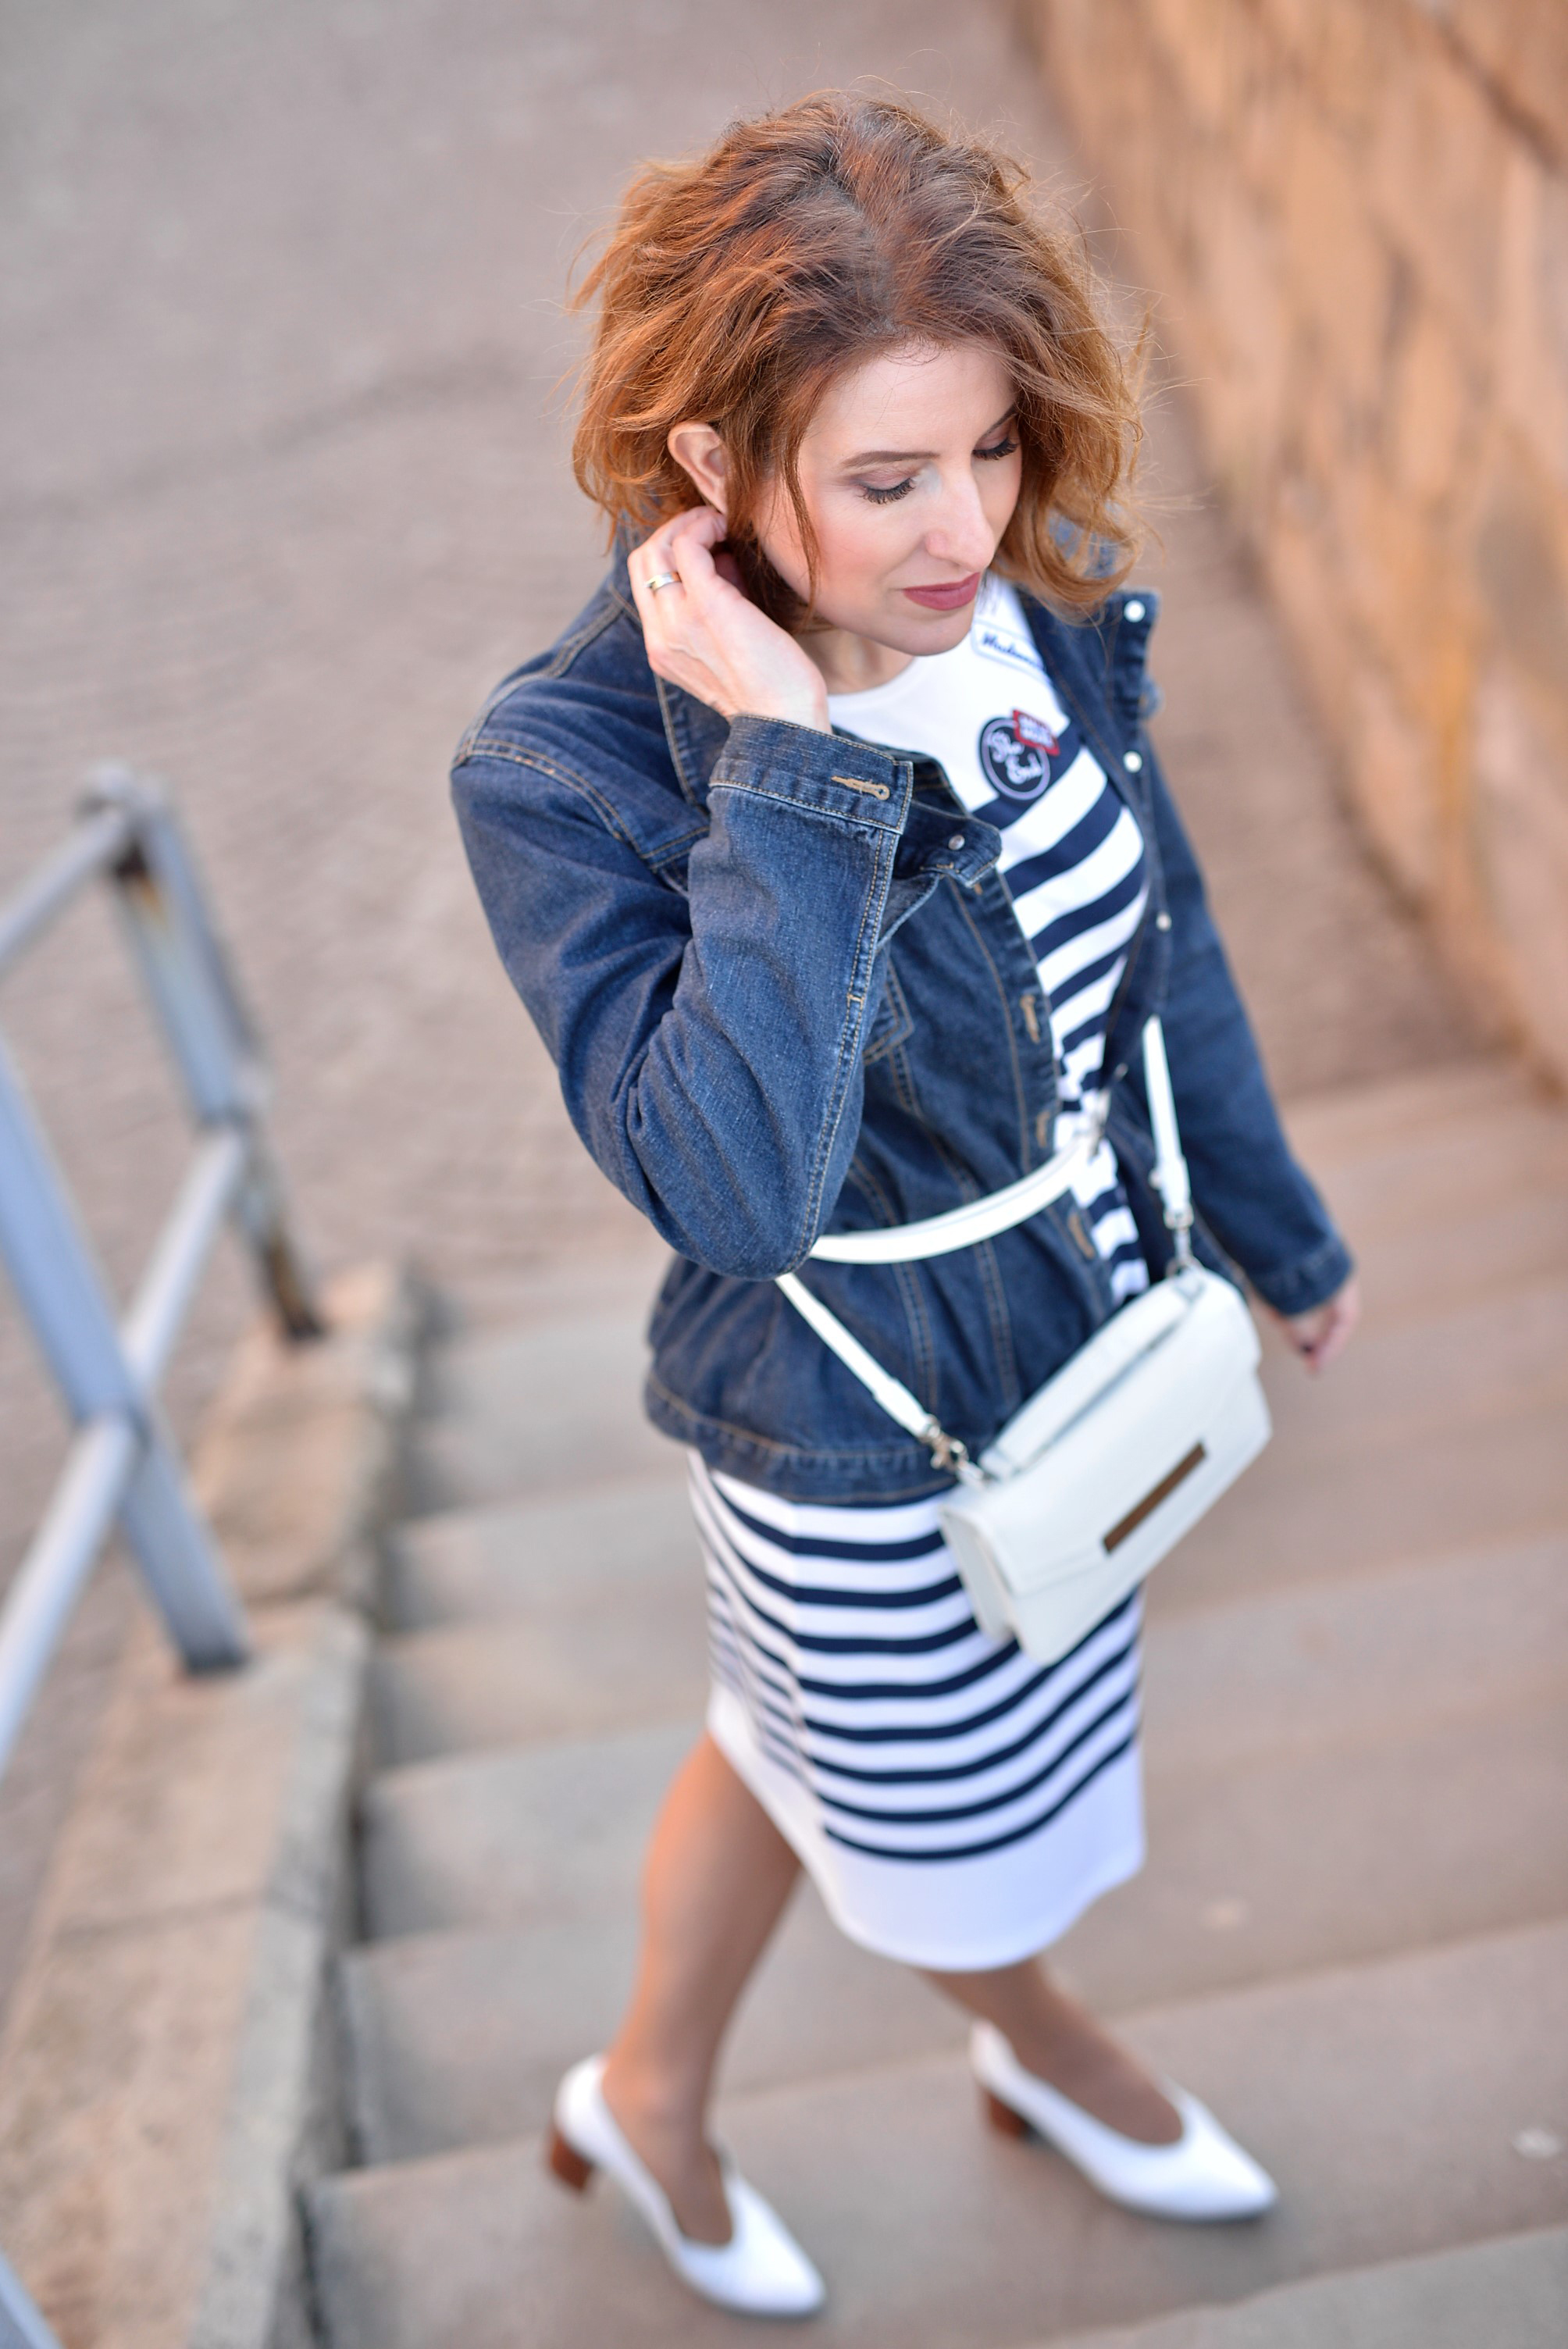 classic outfit, denim, stripes, sport dress, beige coat